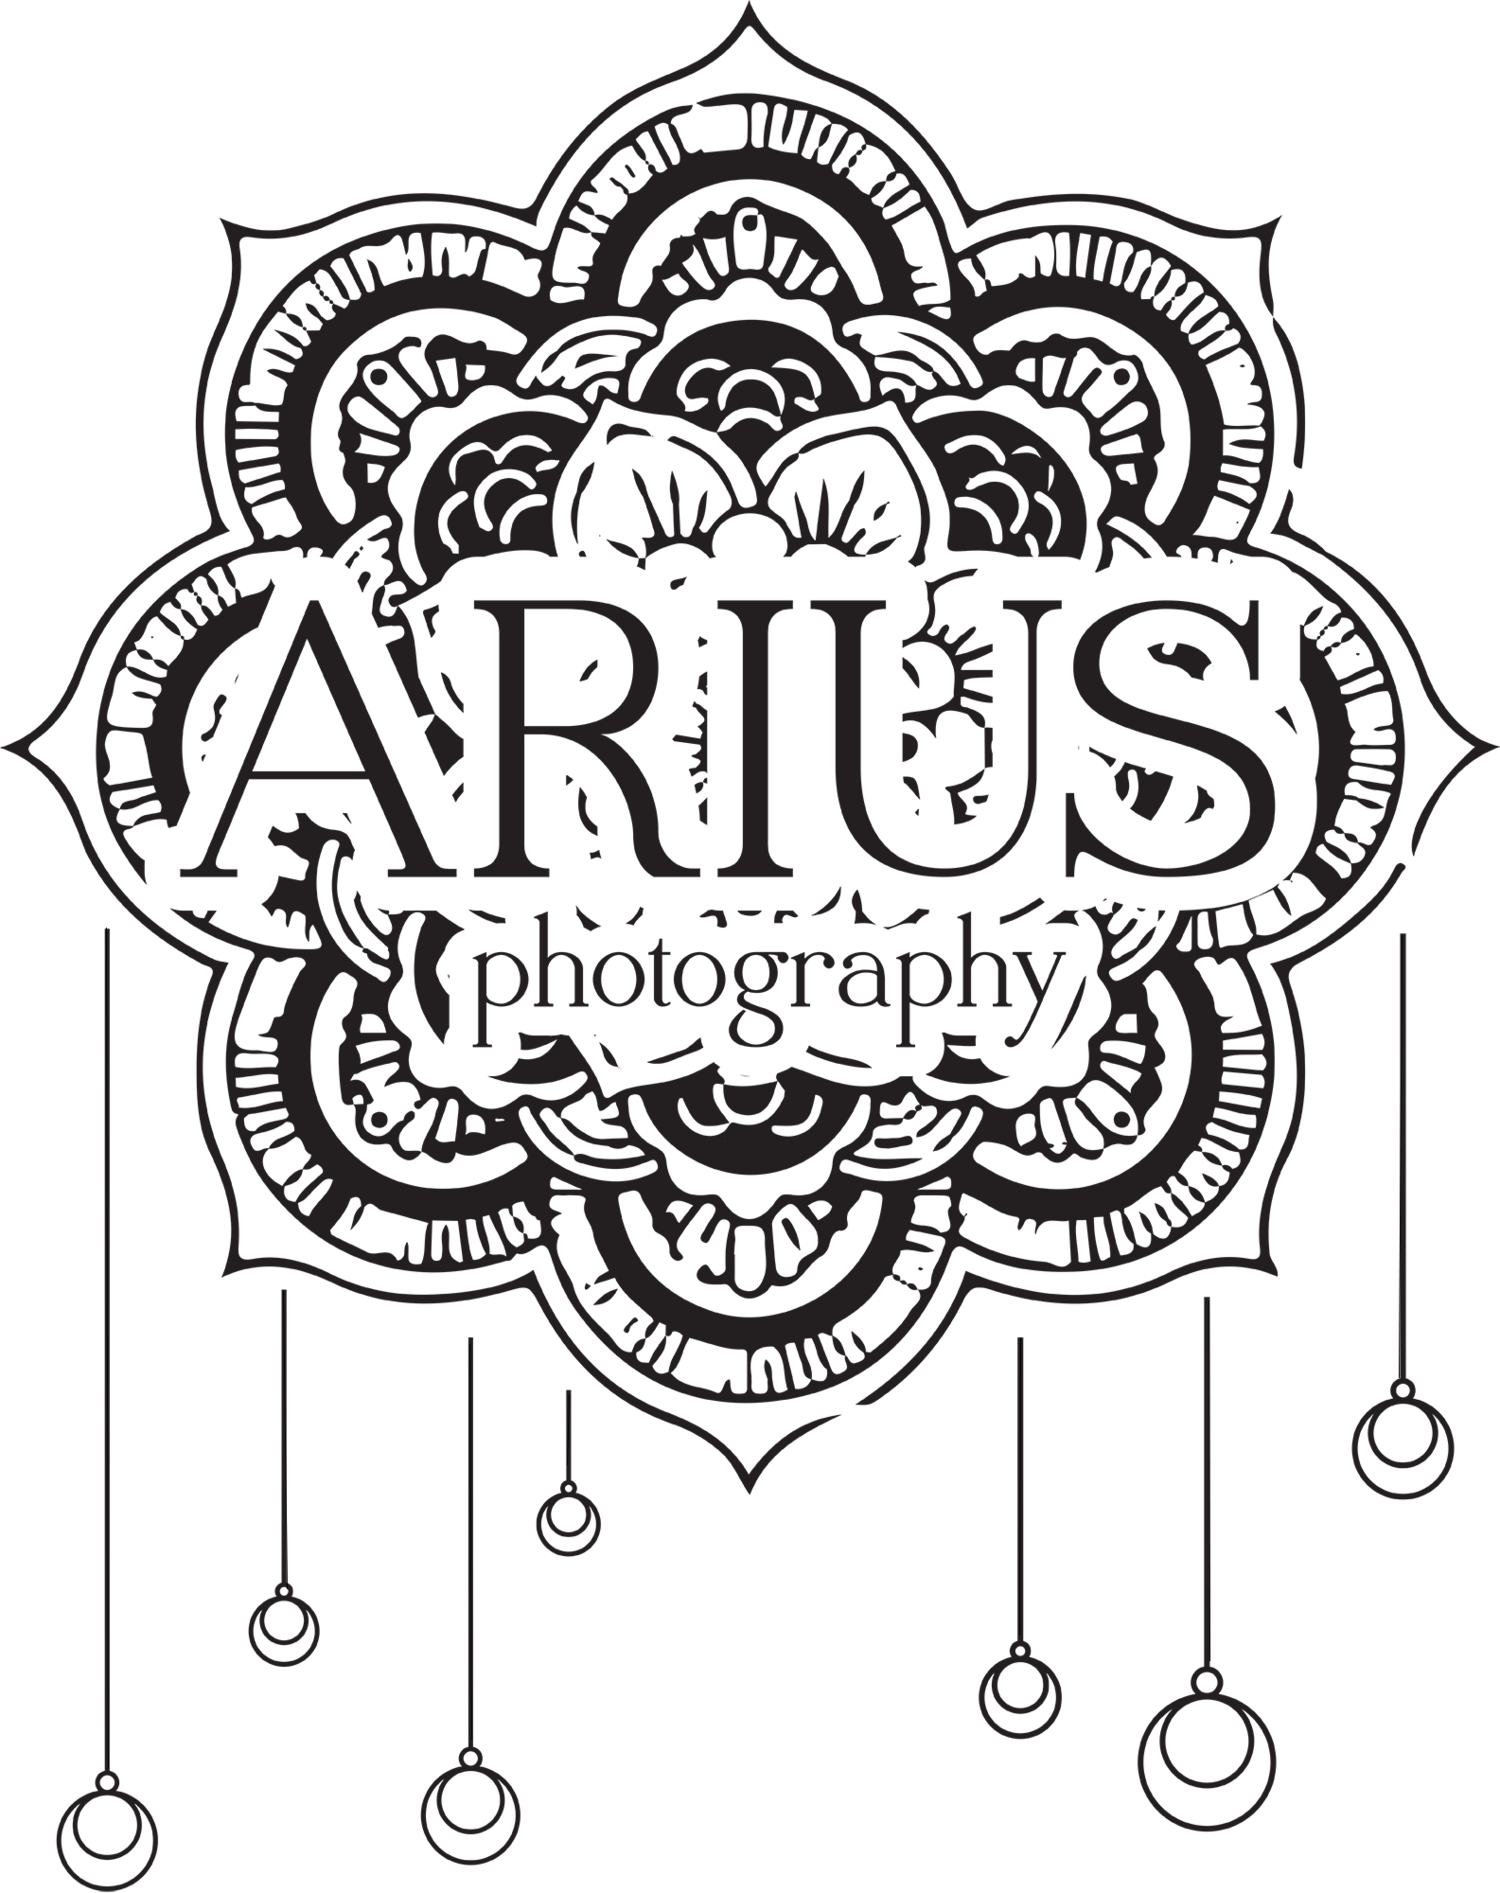 Hudson Valley Family Photographers - Arius